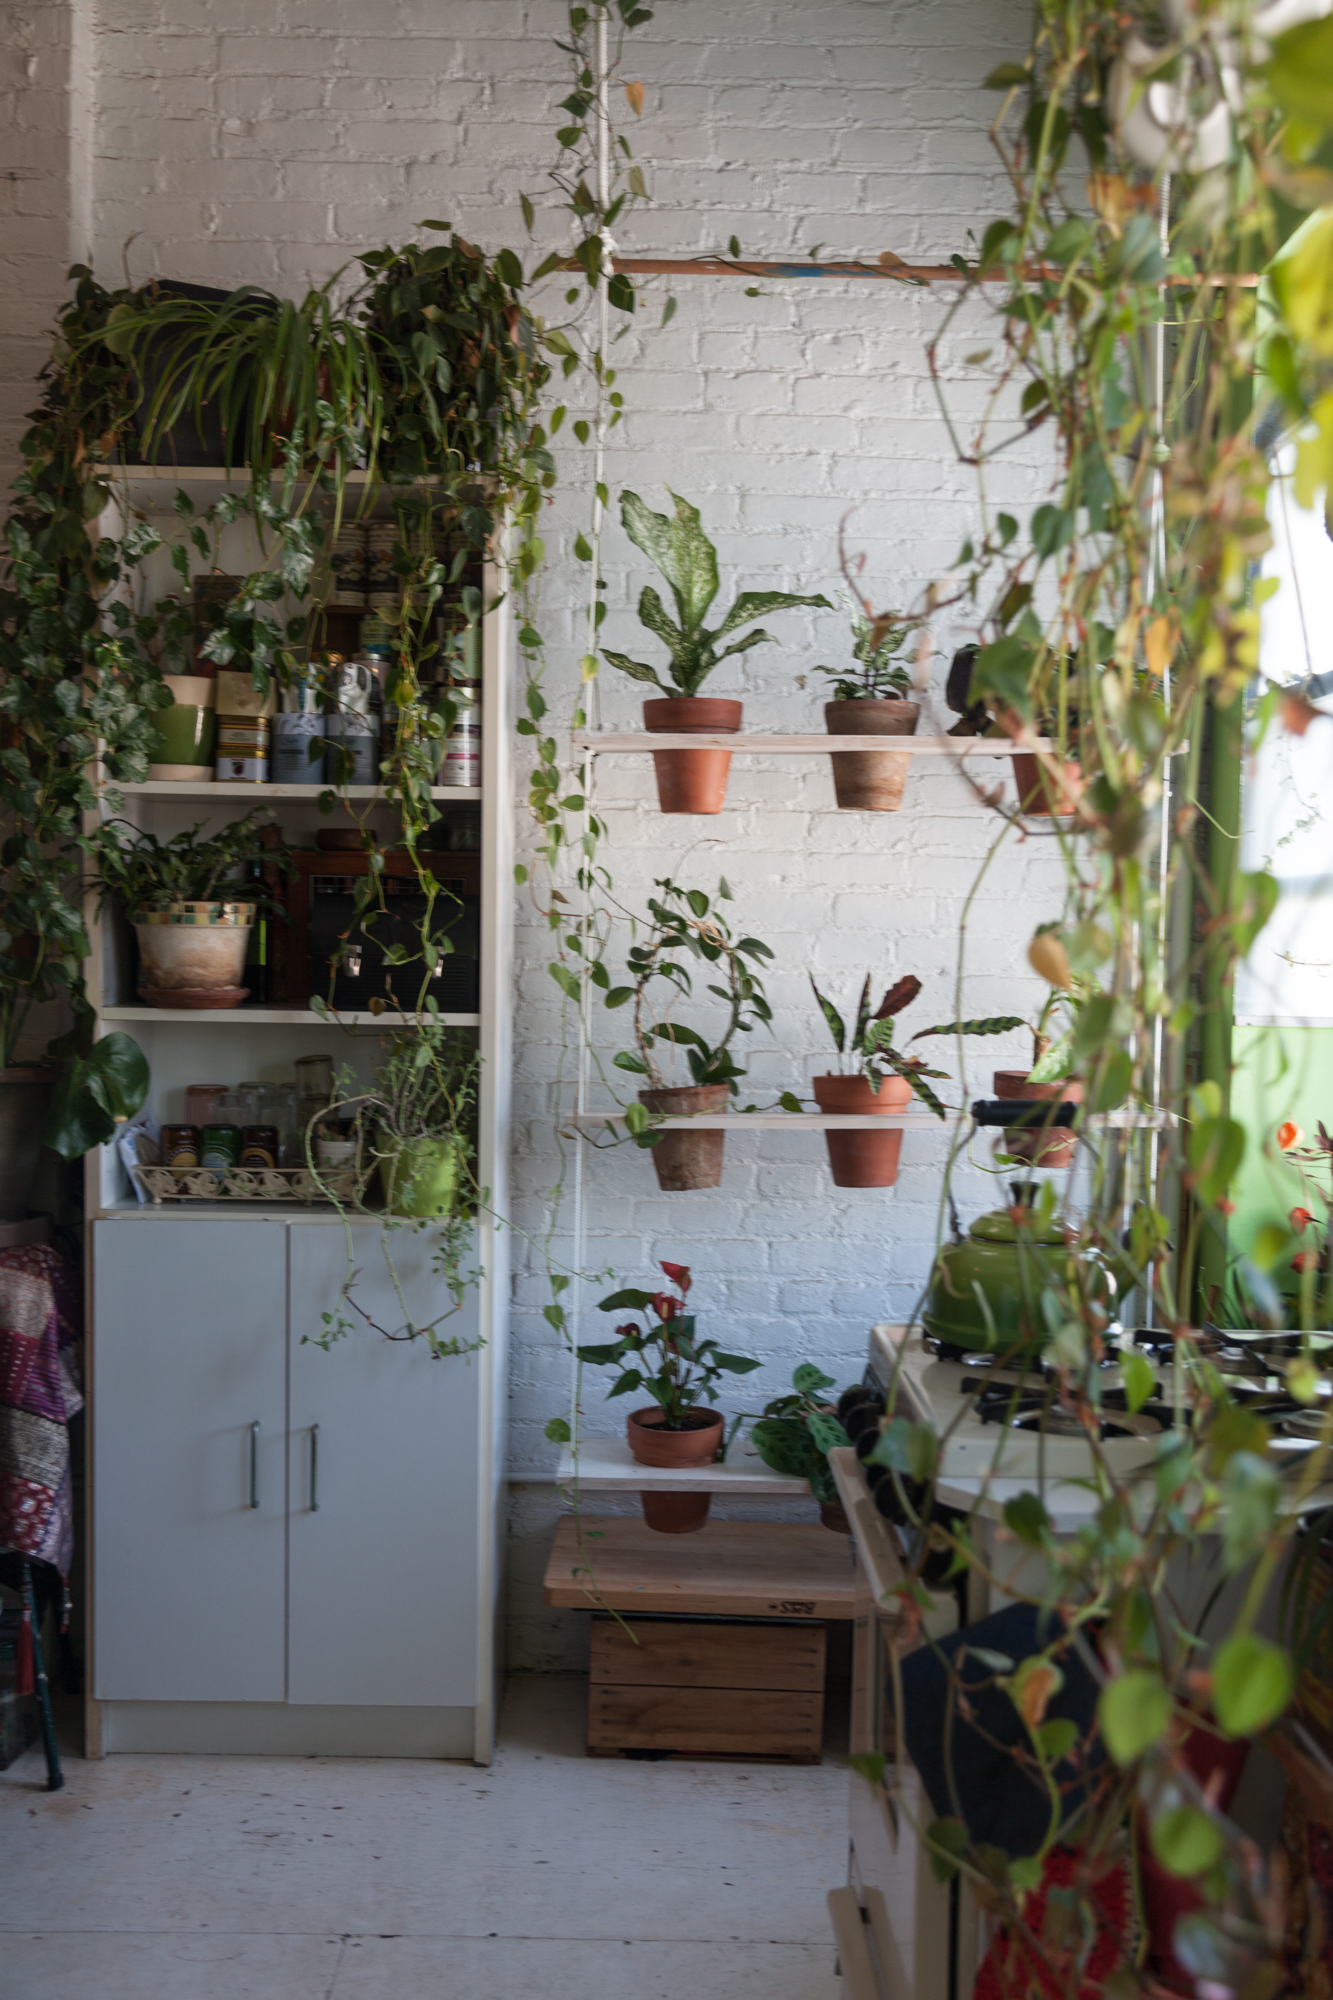 A look at the vertical swing garden a year later. I moved some of the more sensitive  Calatheas  out of the garden and replaced with an  Anthurium  and another  Dieffenbachia   bausei  . You may not be able to tell from this shot, but the  Stephanotis floribunda is now climbing up the ropes.